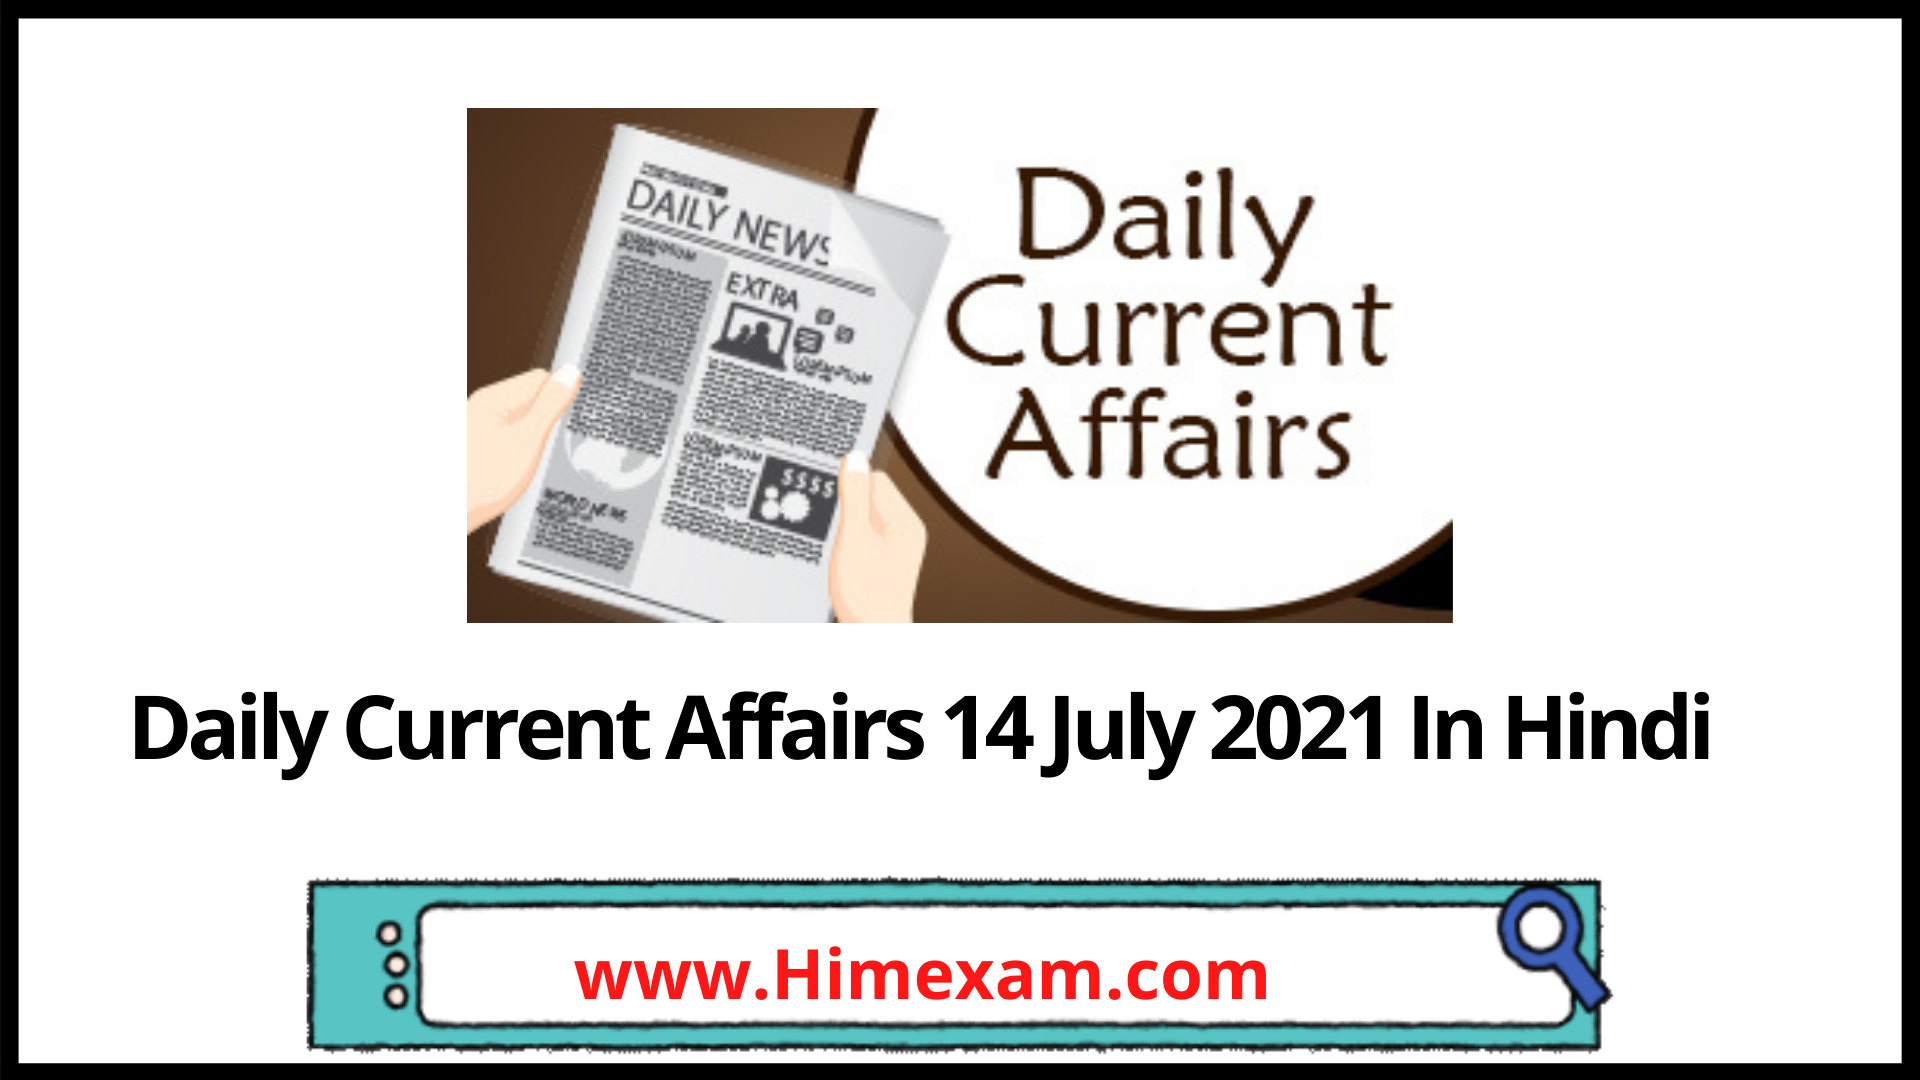 Daily Current Affairs 14 July 2021 In Hindi